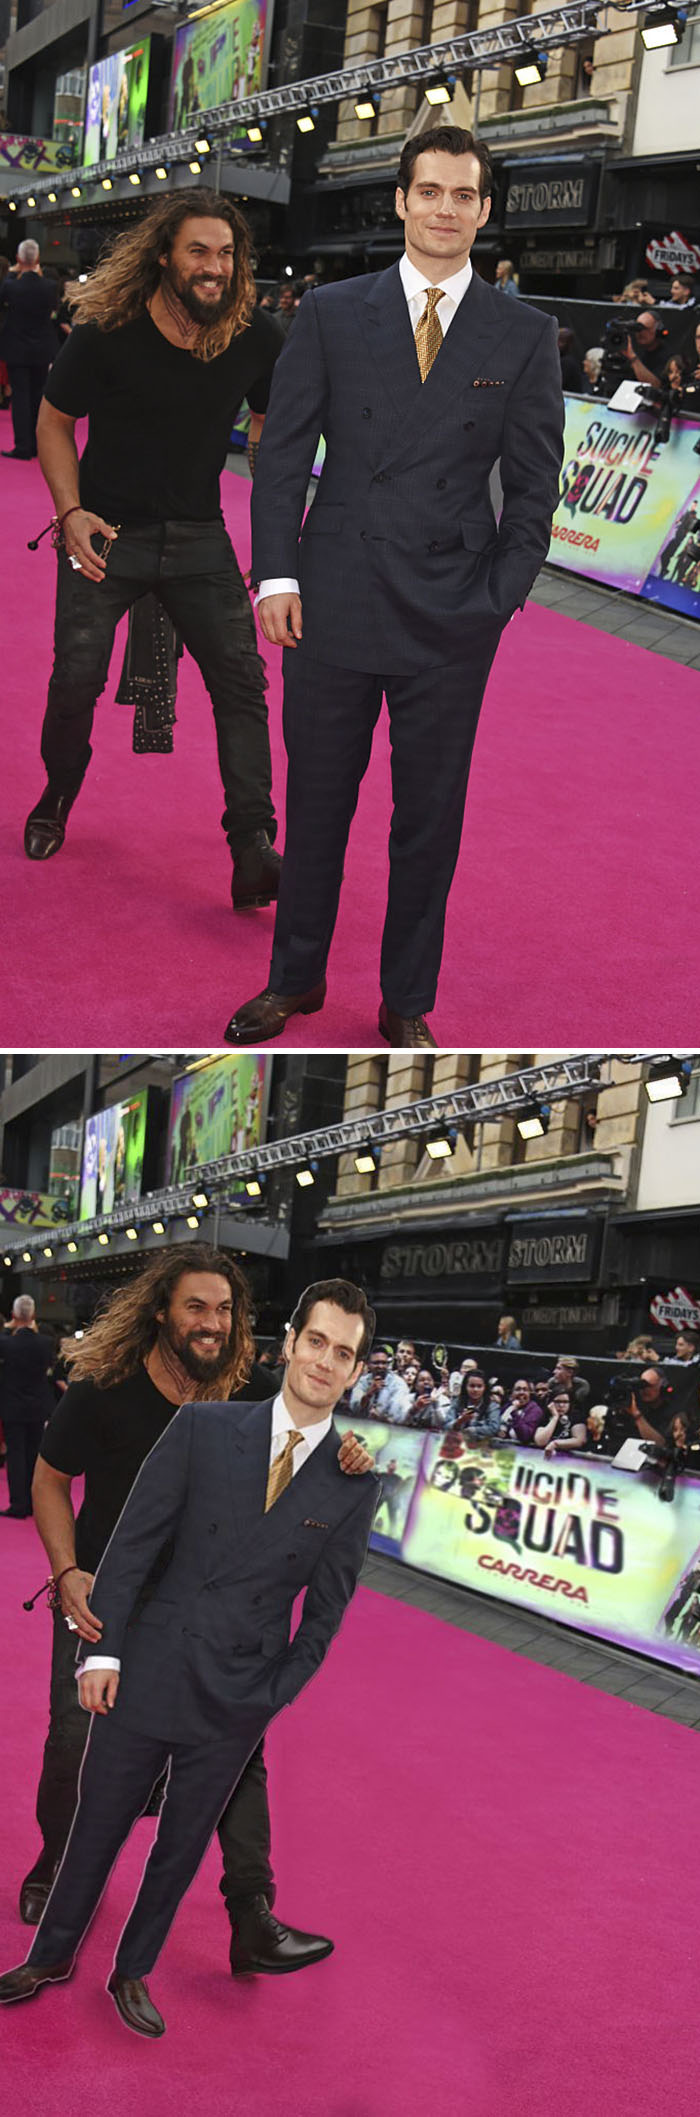 Jason Momoa Sneaking Up On Henry Cavill